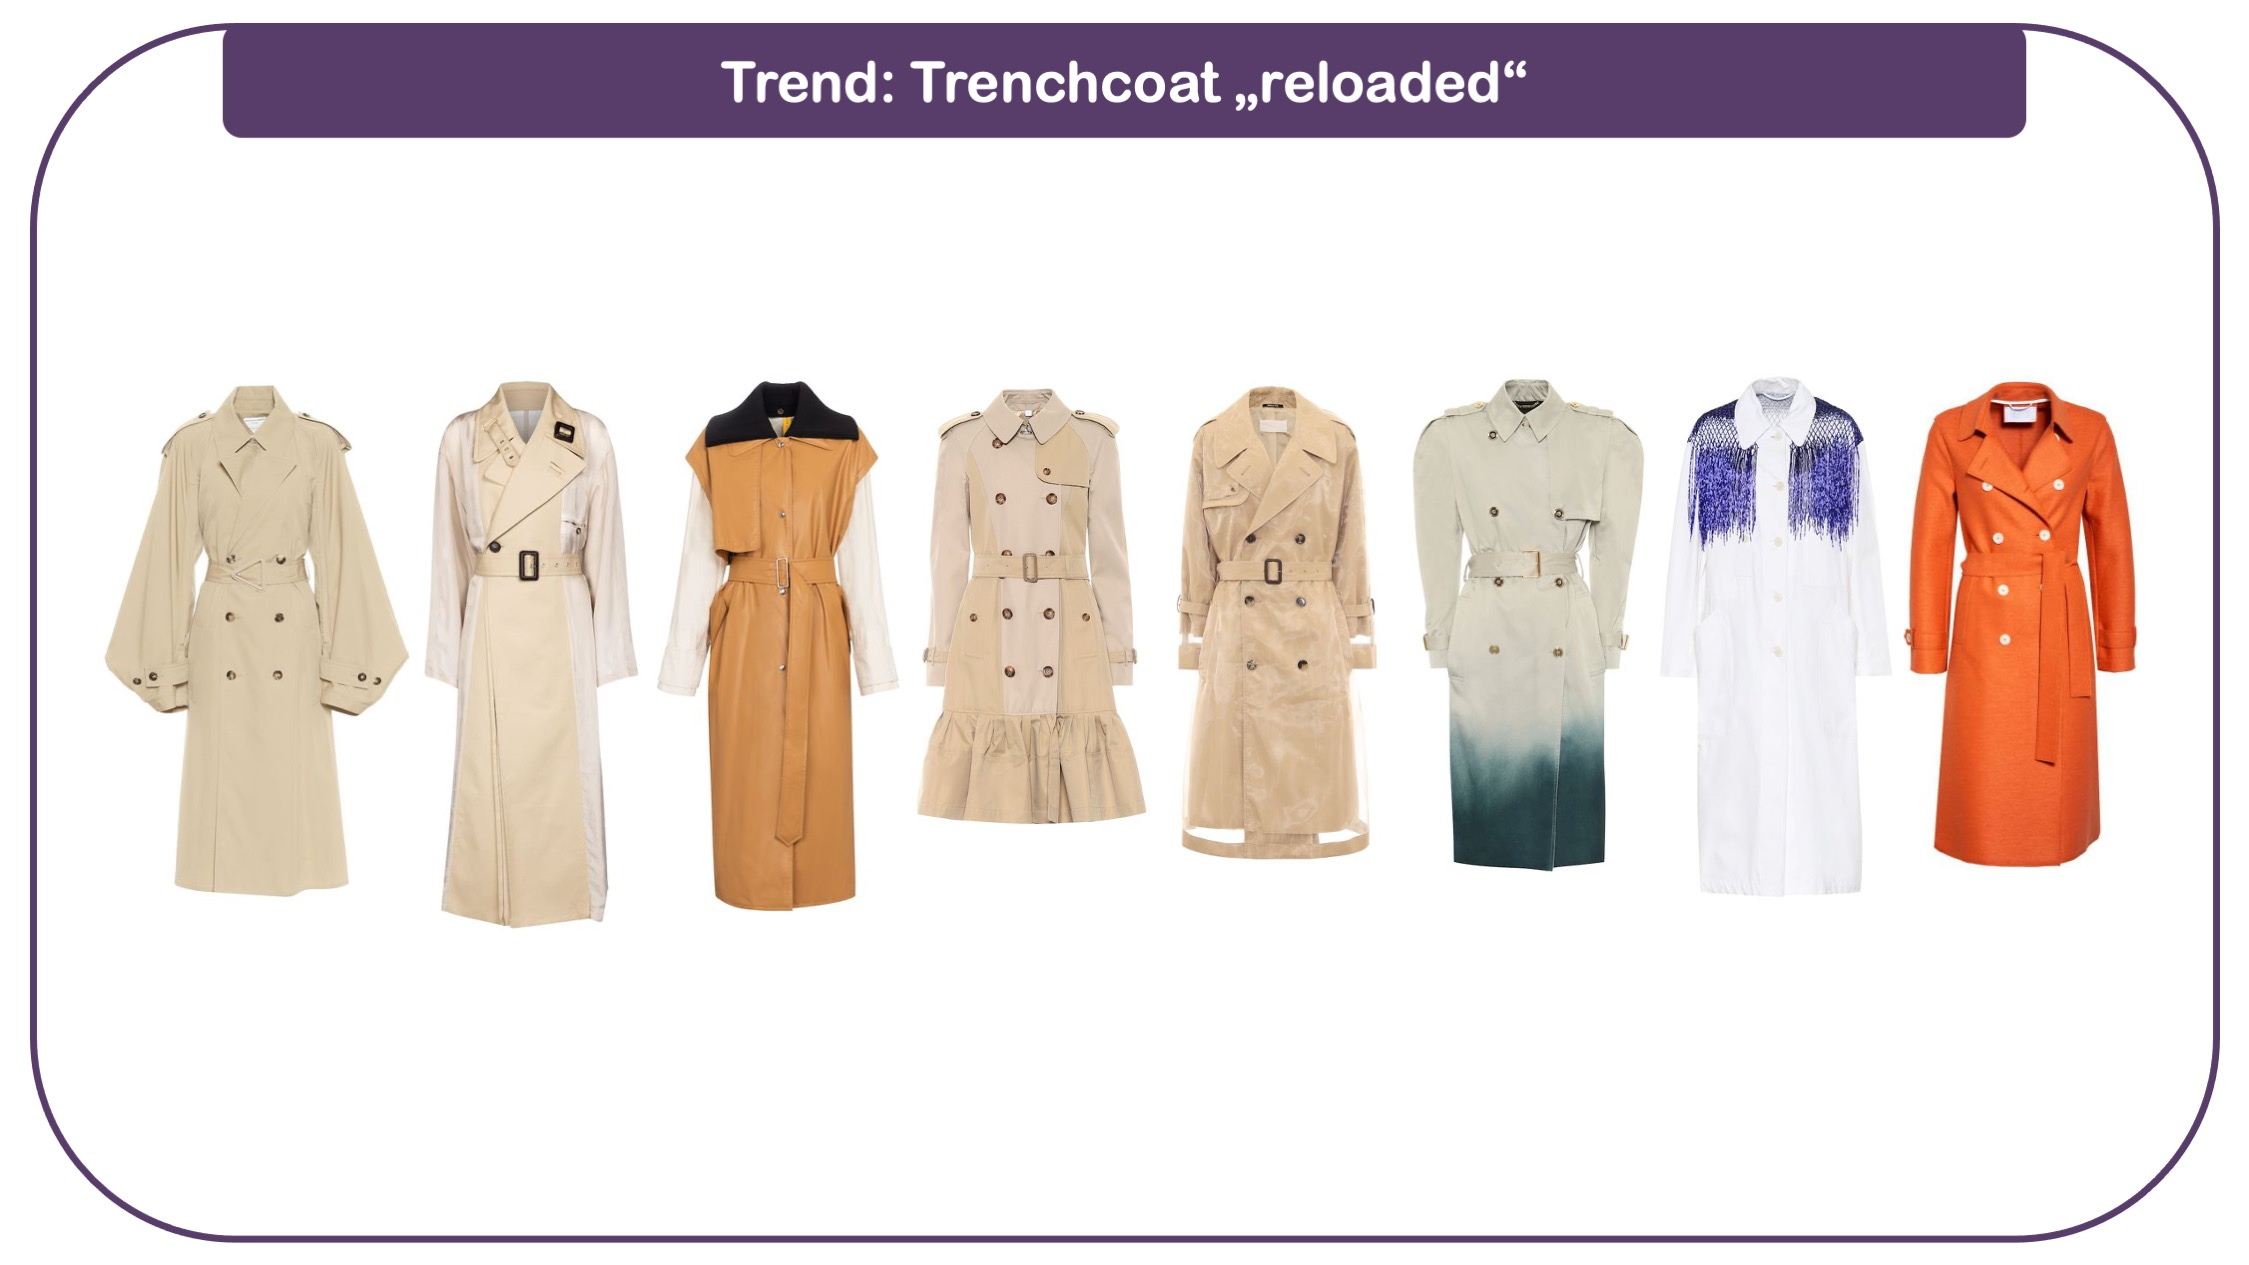 Modetrends für frauen 40 plus - Trenchcoats in neuer Optik